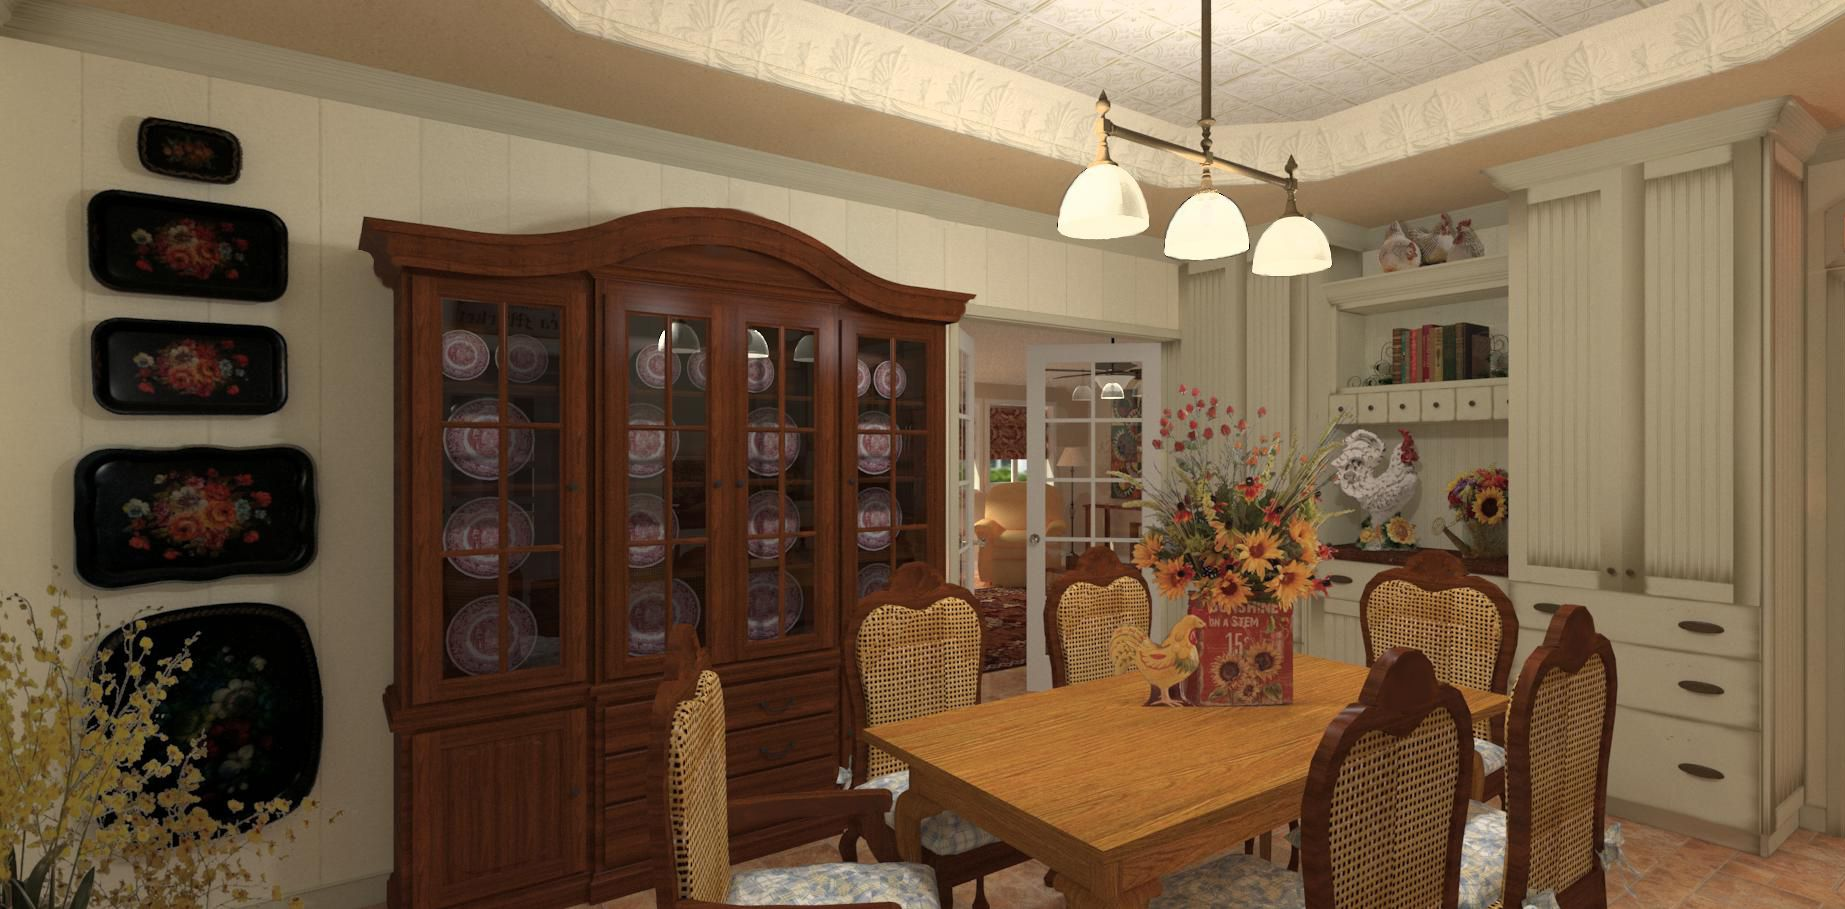 This Dining Room Is In The Center Of, House Has No Dining Room